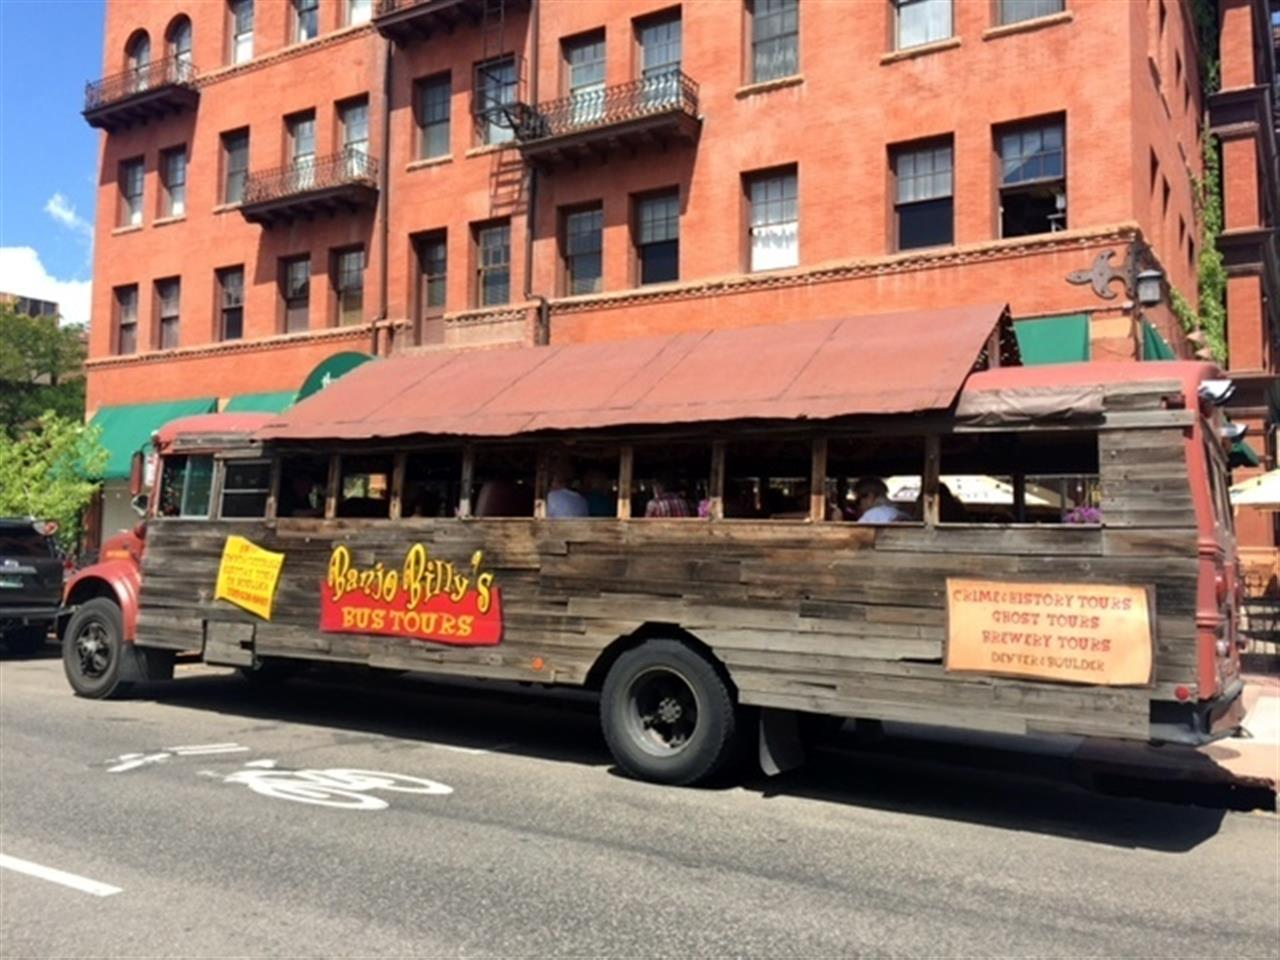 Banjo Billy is a popular site around Downtown Boulder. It's a tour bus that gives both historical and ghost story tours of Boulder.